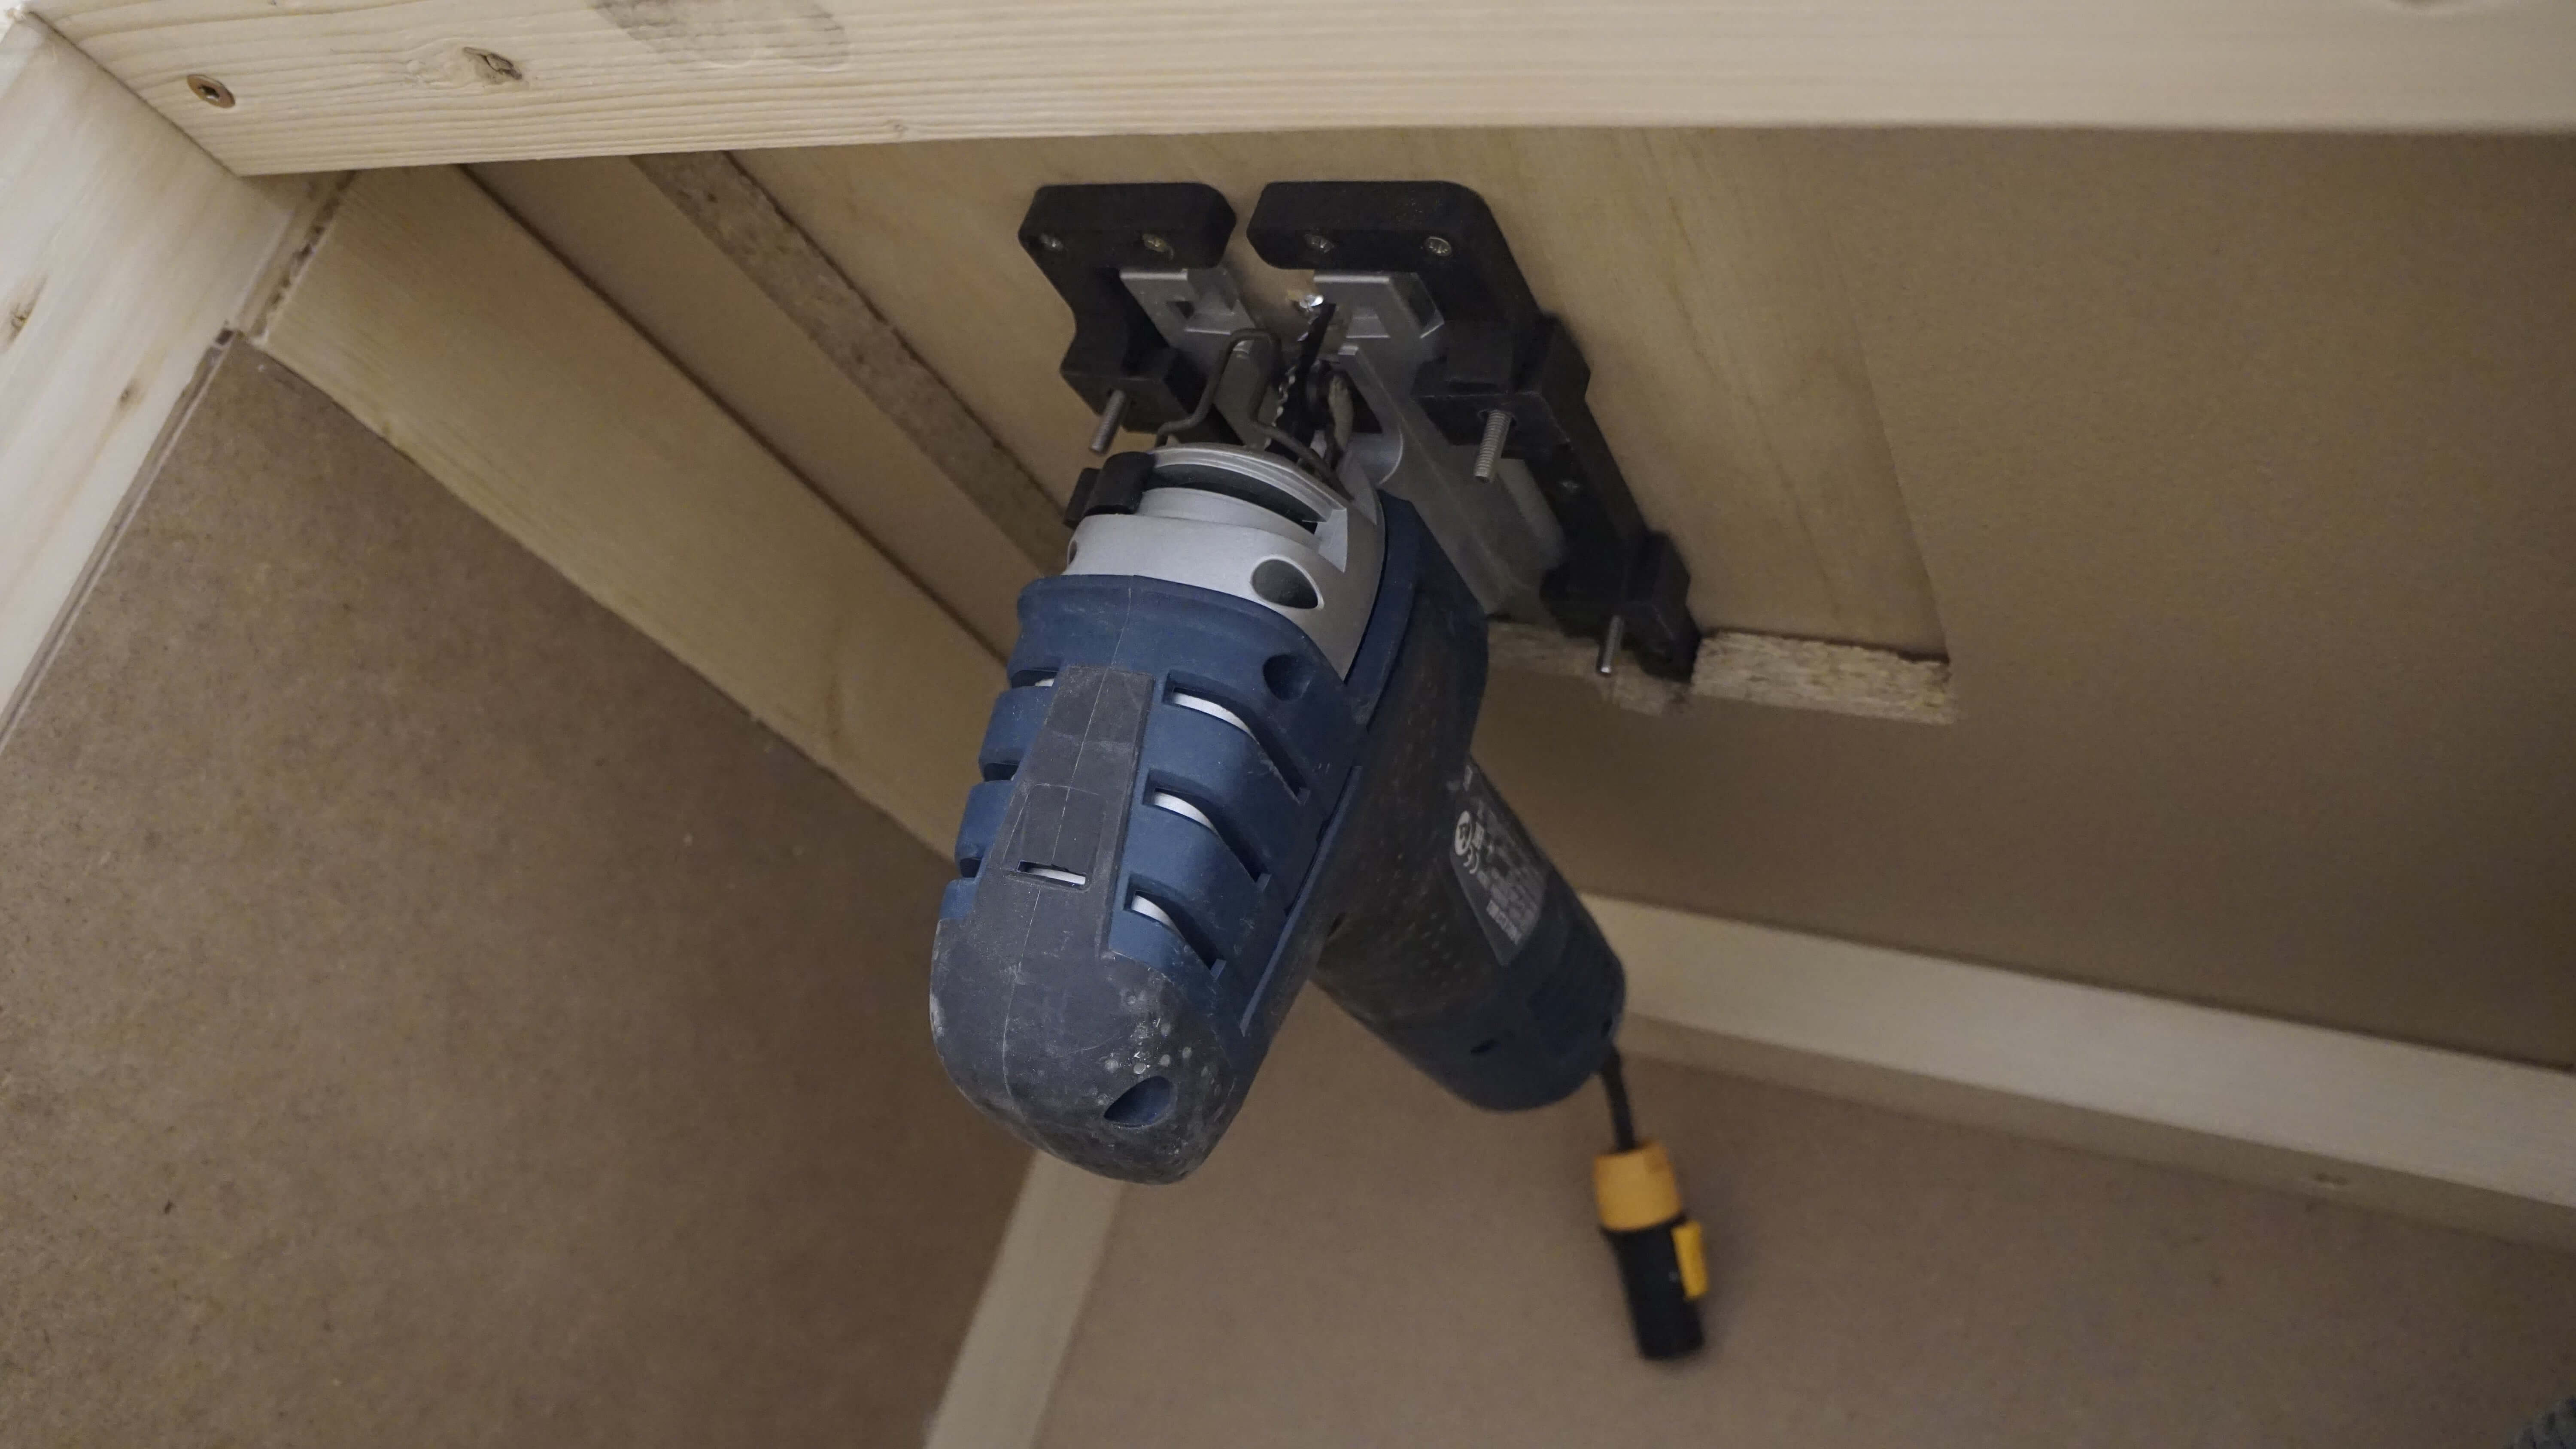 Jig Saw Table Mount Adapters for the Bosch GST 150 CE